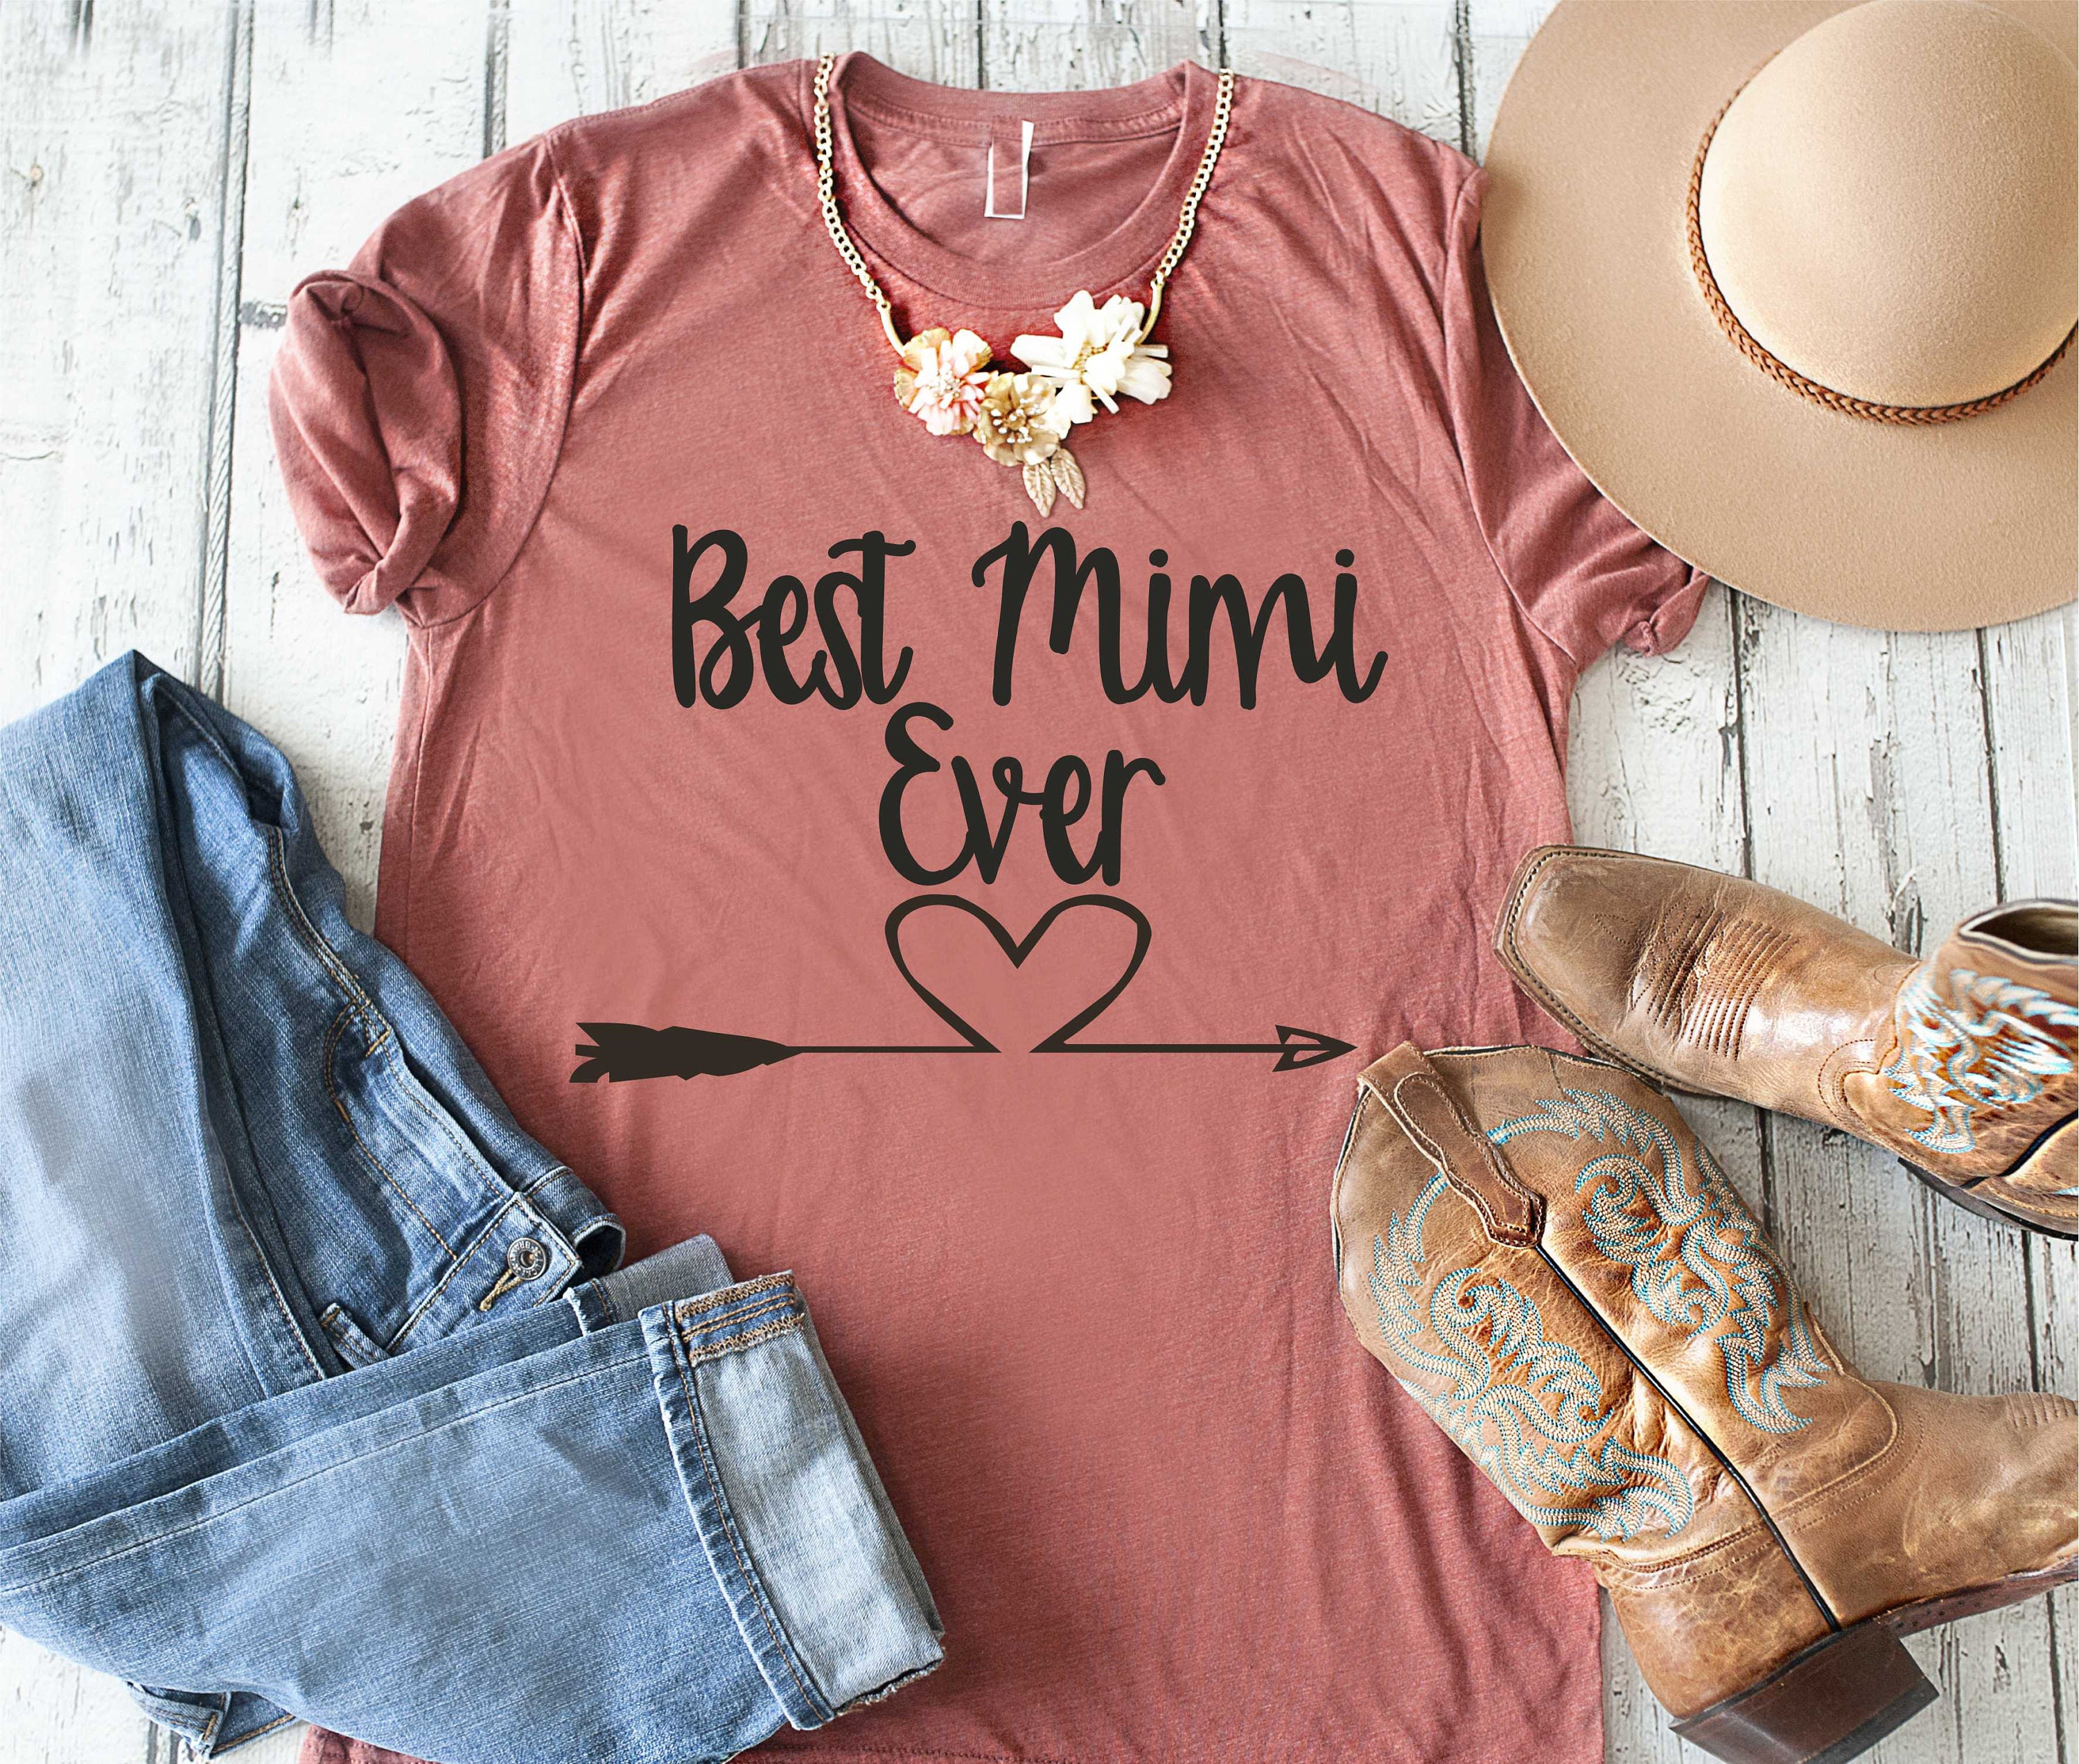 Best Mimi Ever Shirt Cute T Grandma Shirts Grandmother Gifts Birthday Gift Ideas For